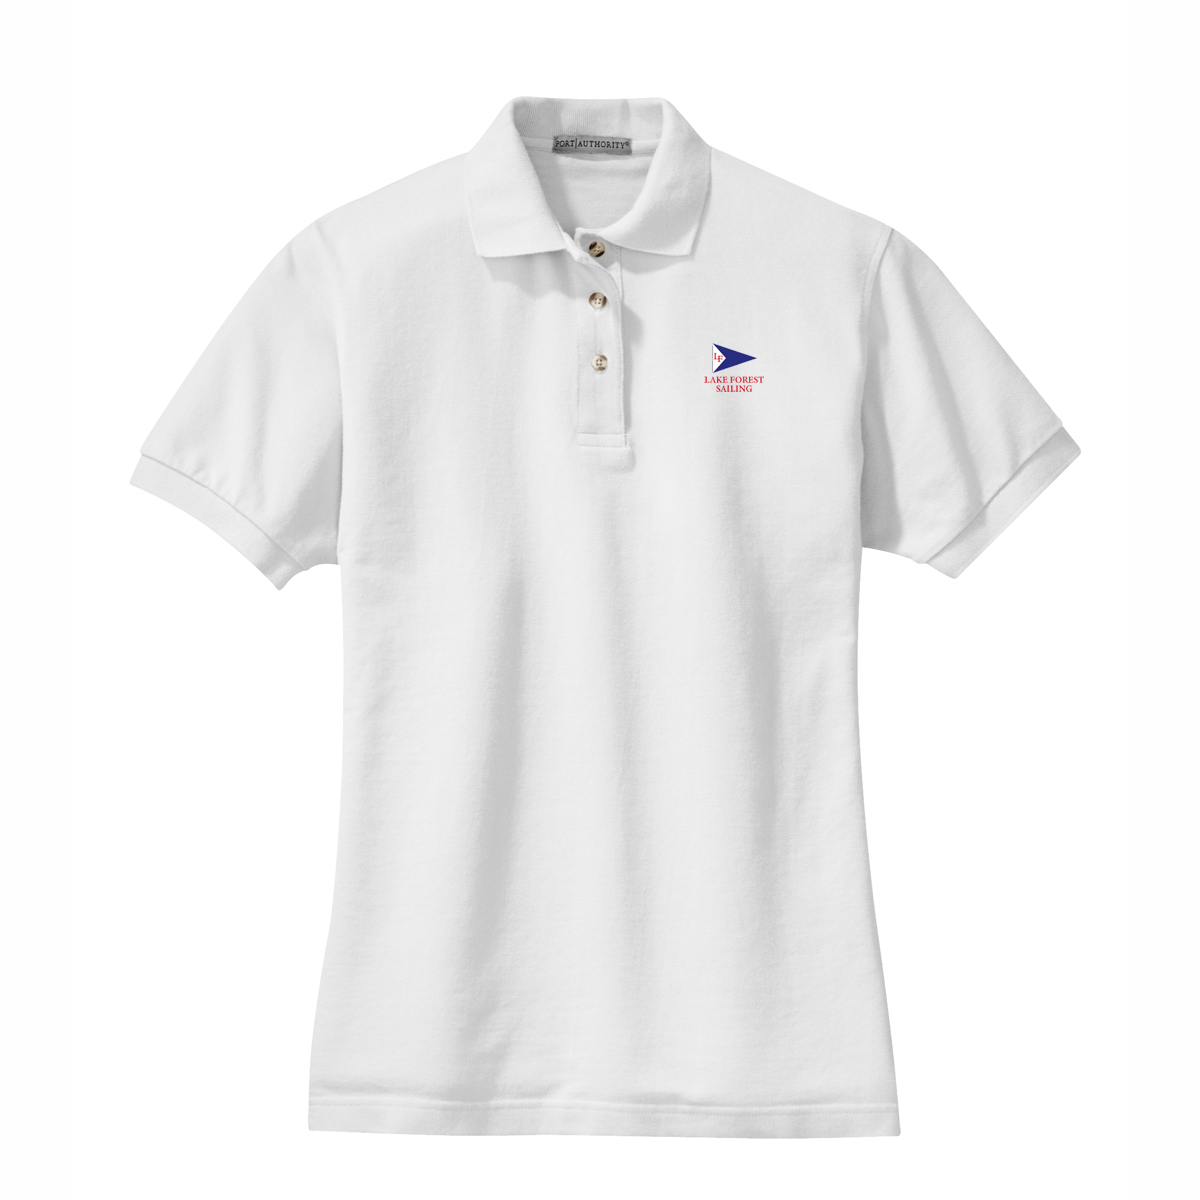 Lake Forest Sailing - Women's Cotton Polo